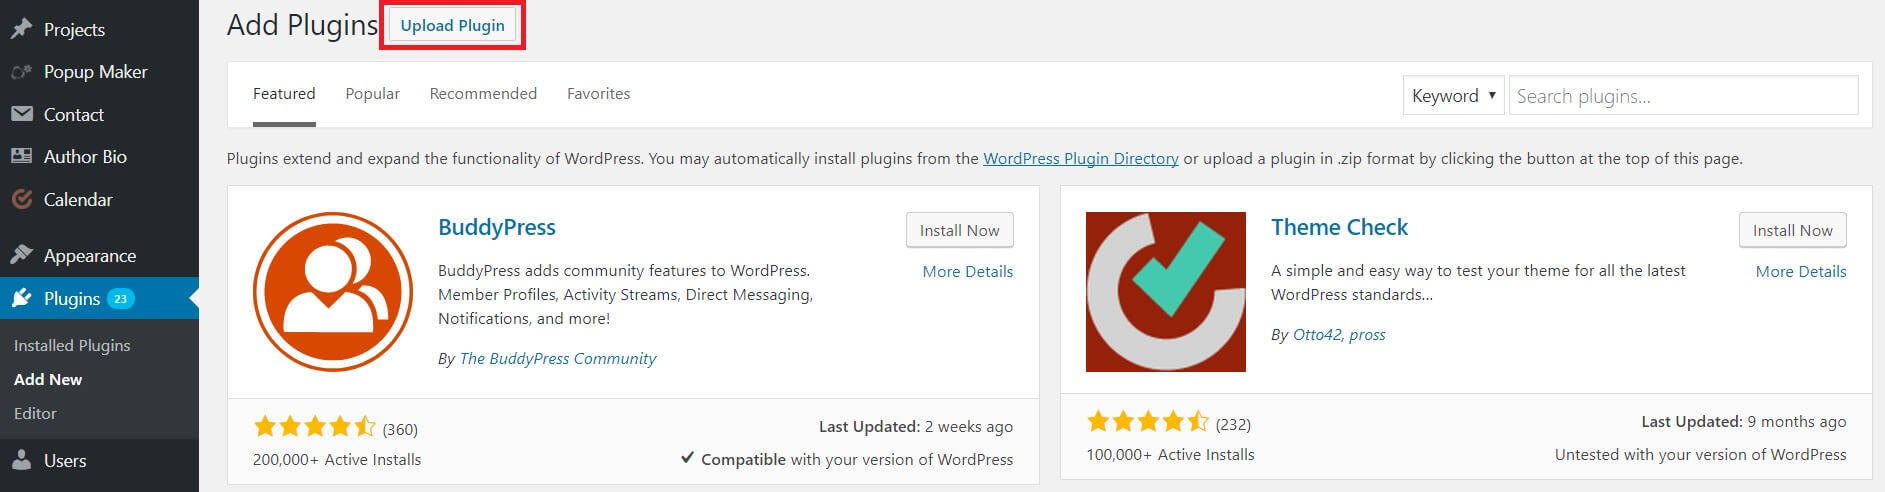 The Upload Plugin button on WordPress